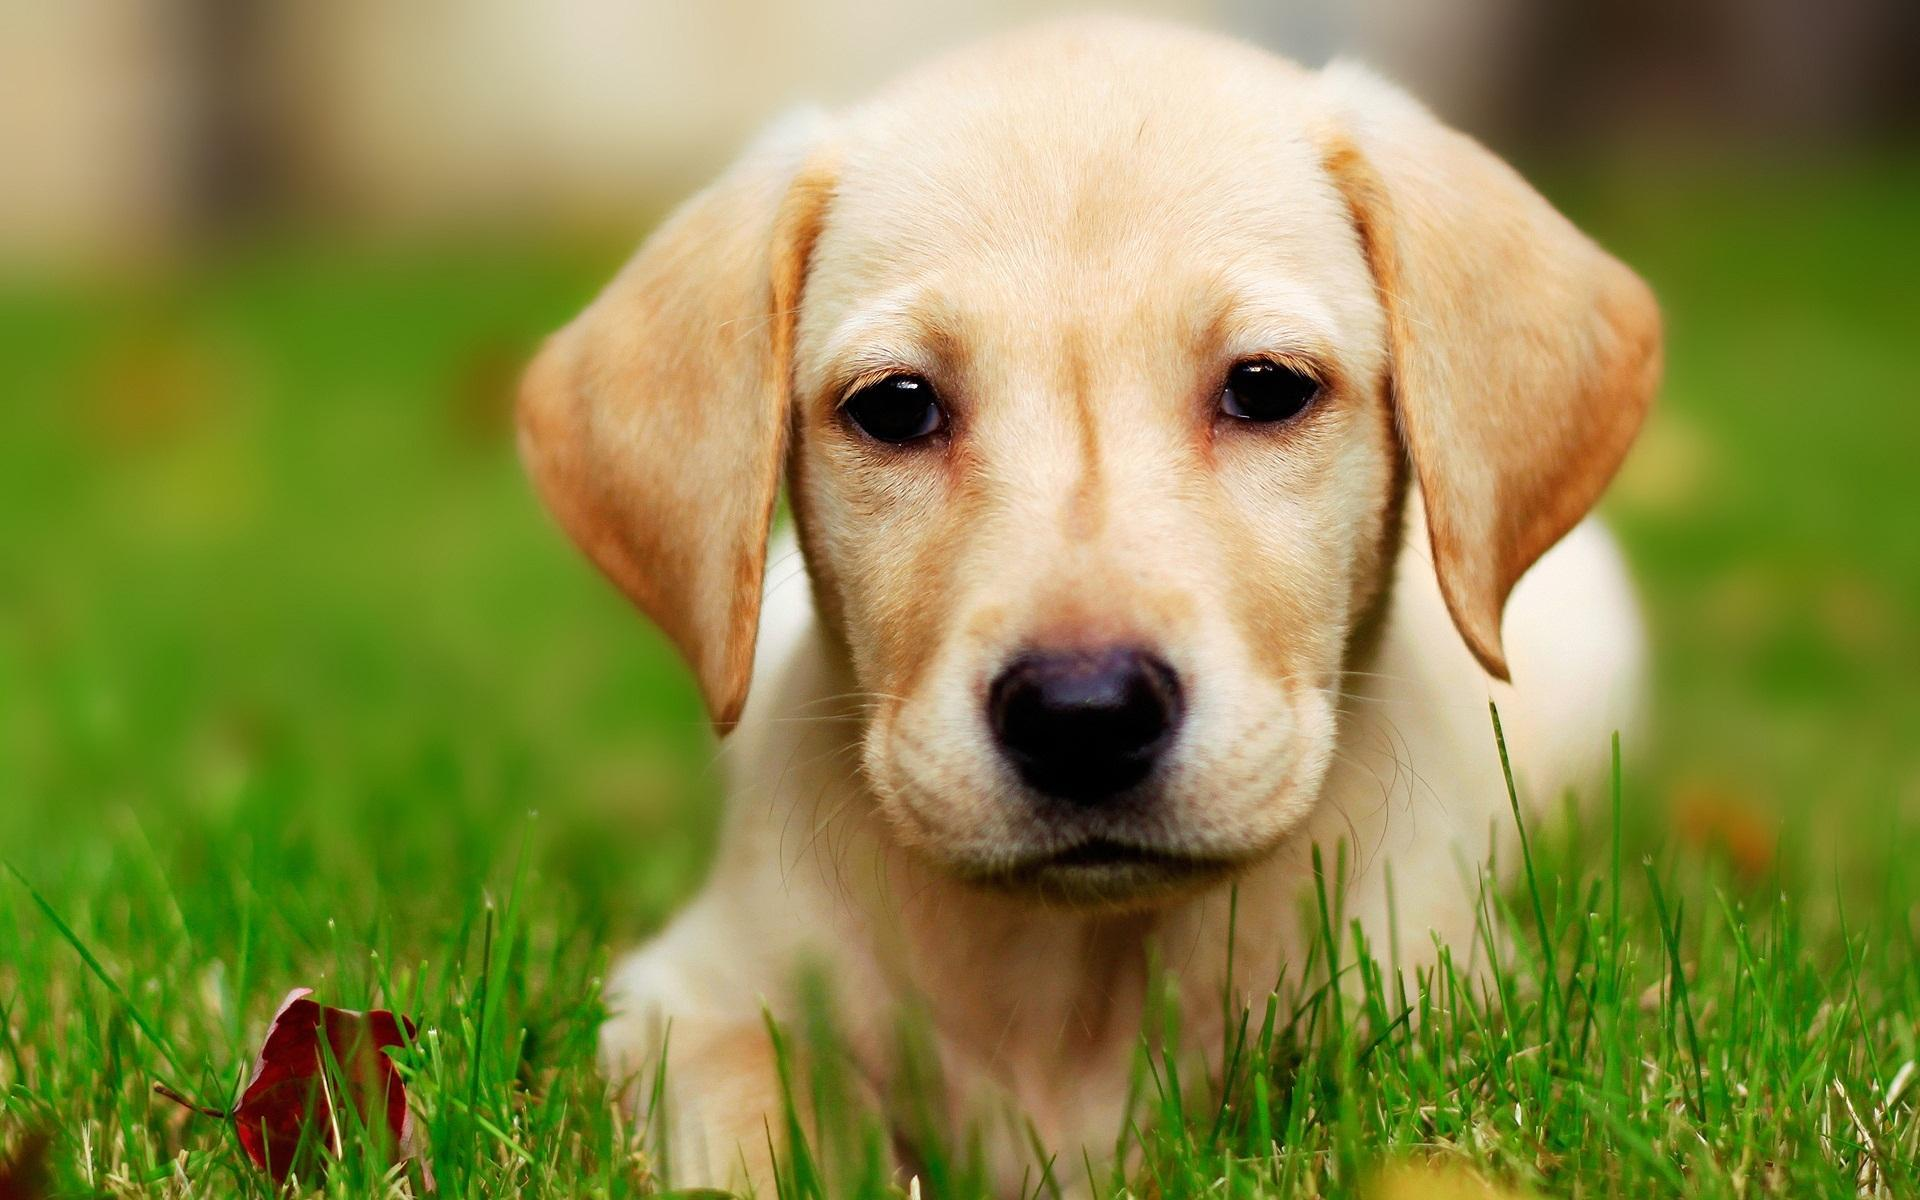 Which breed of dog is the cutest?